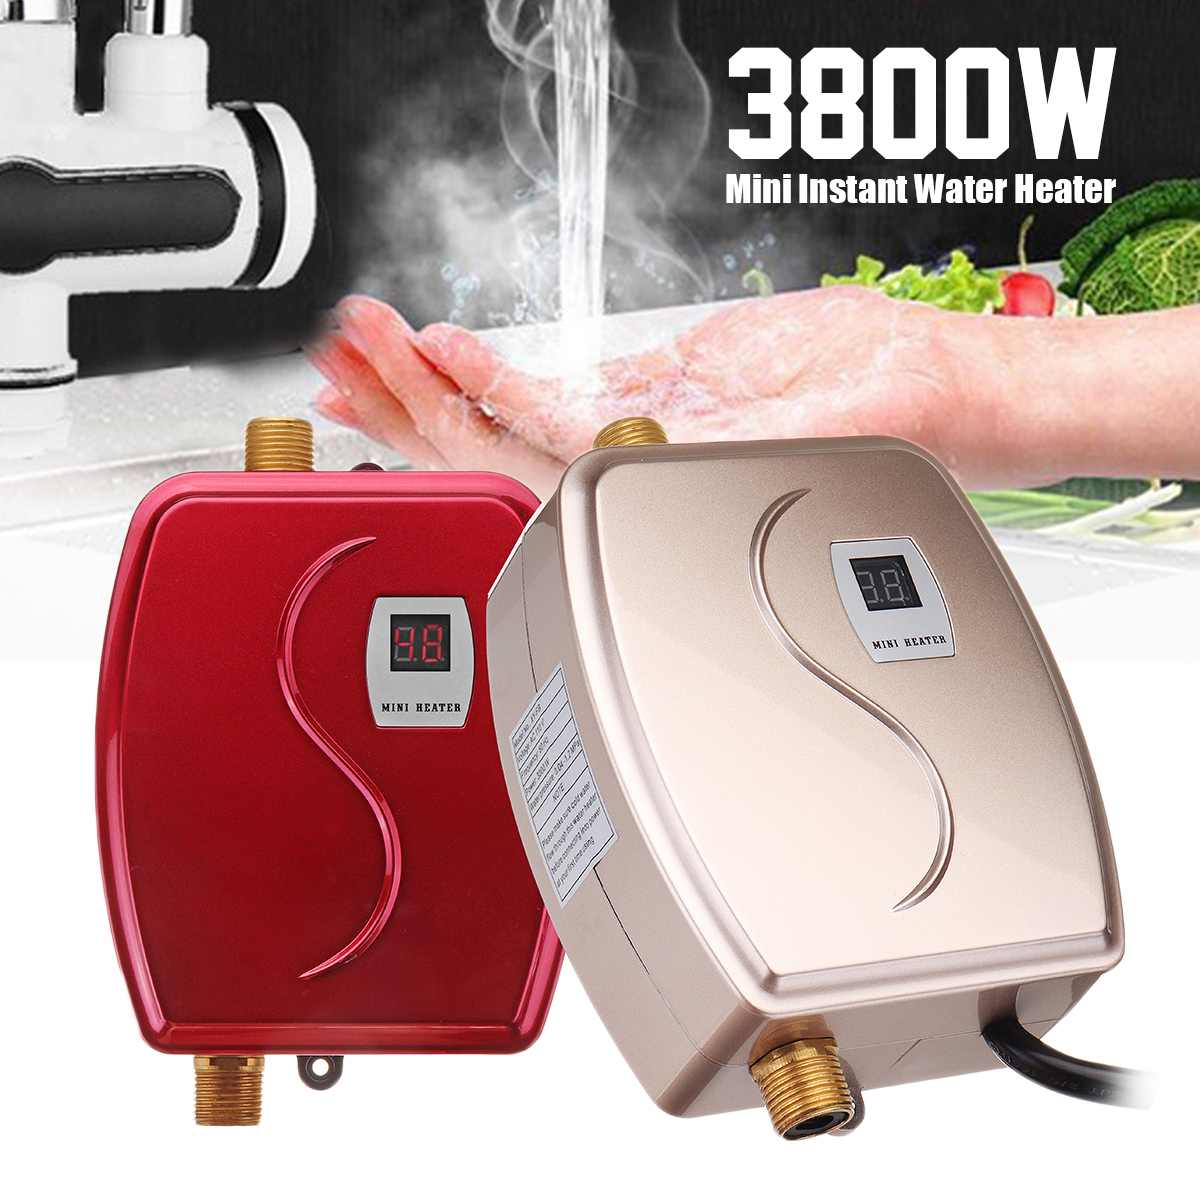 3800W Mini Tankless Instant Hot Water Heater Faucet Kitchen Heating Thermostat US/EU Plug Intelligent Energy Saving Waterproof